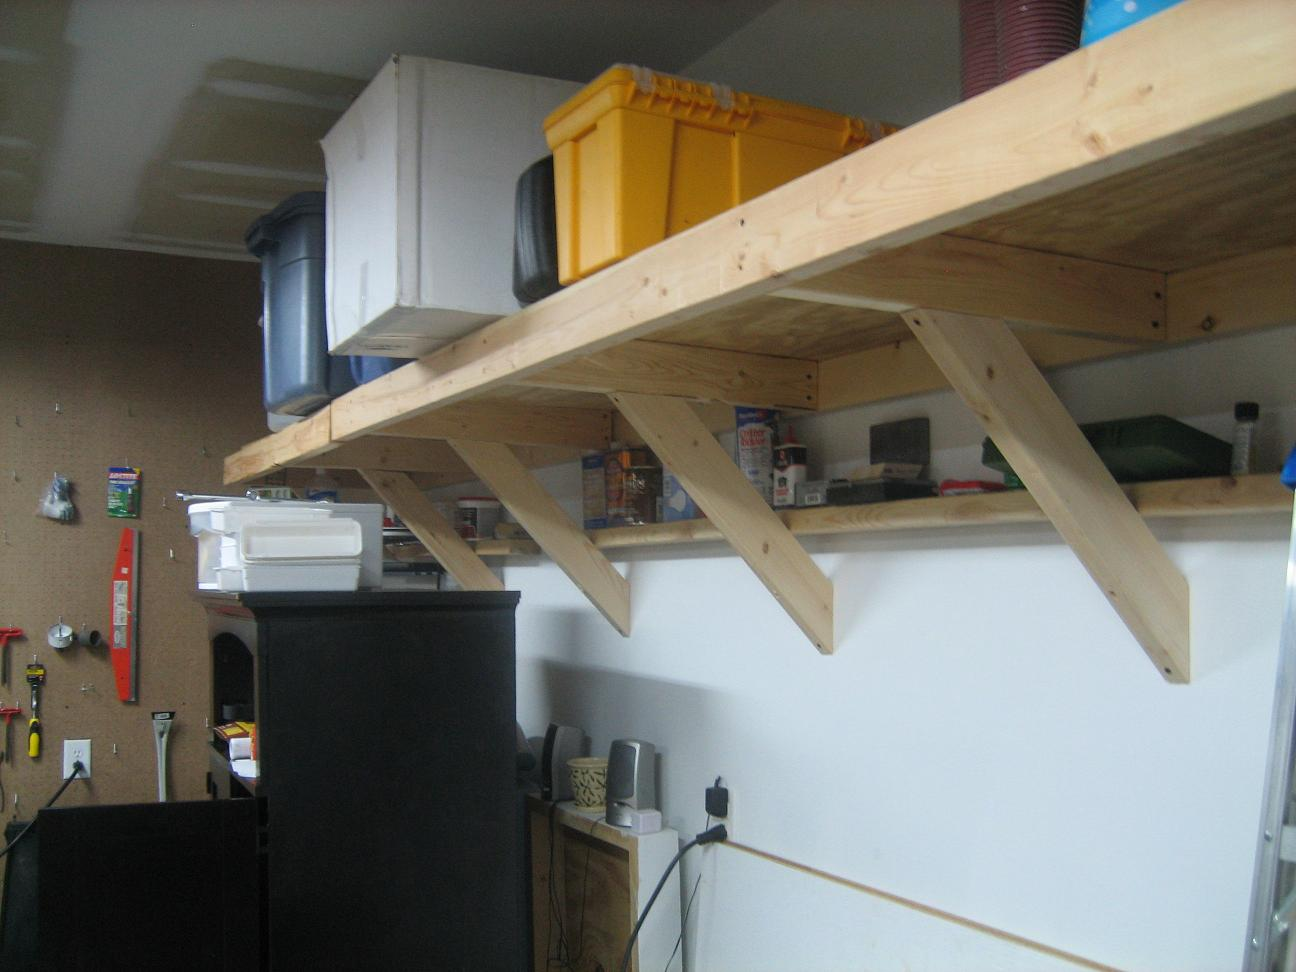 This was an early picture, without the other shelving unit.